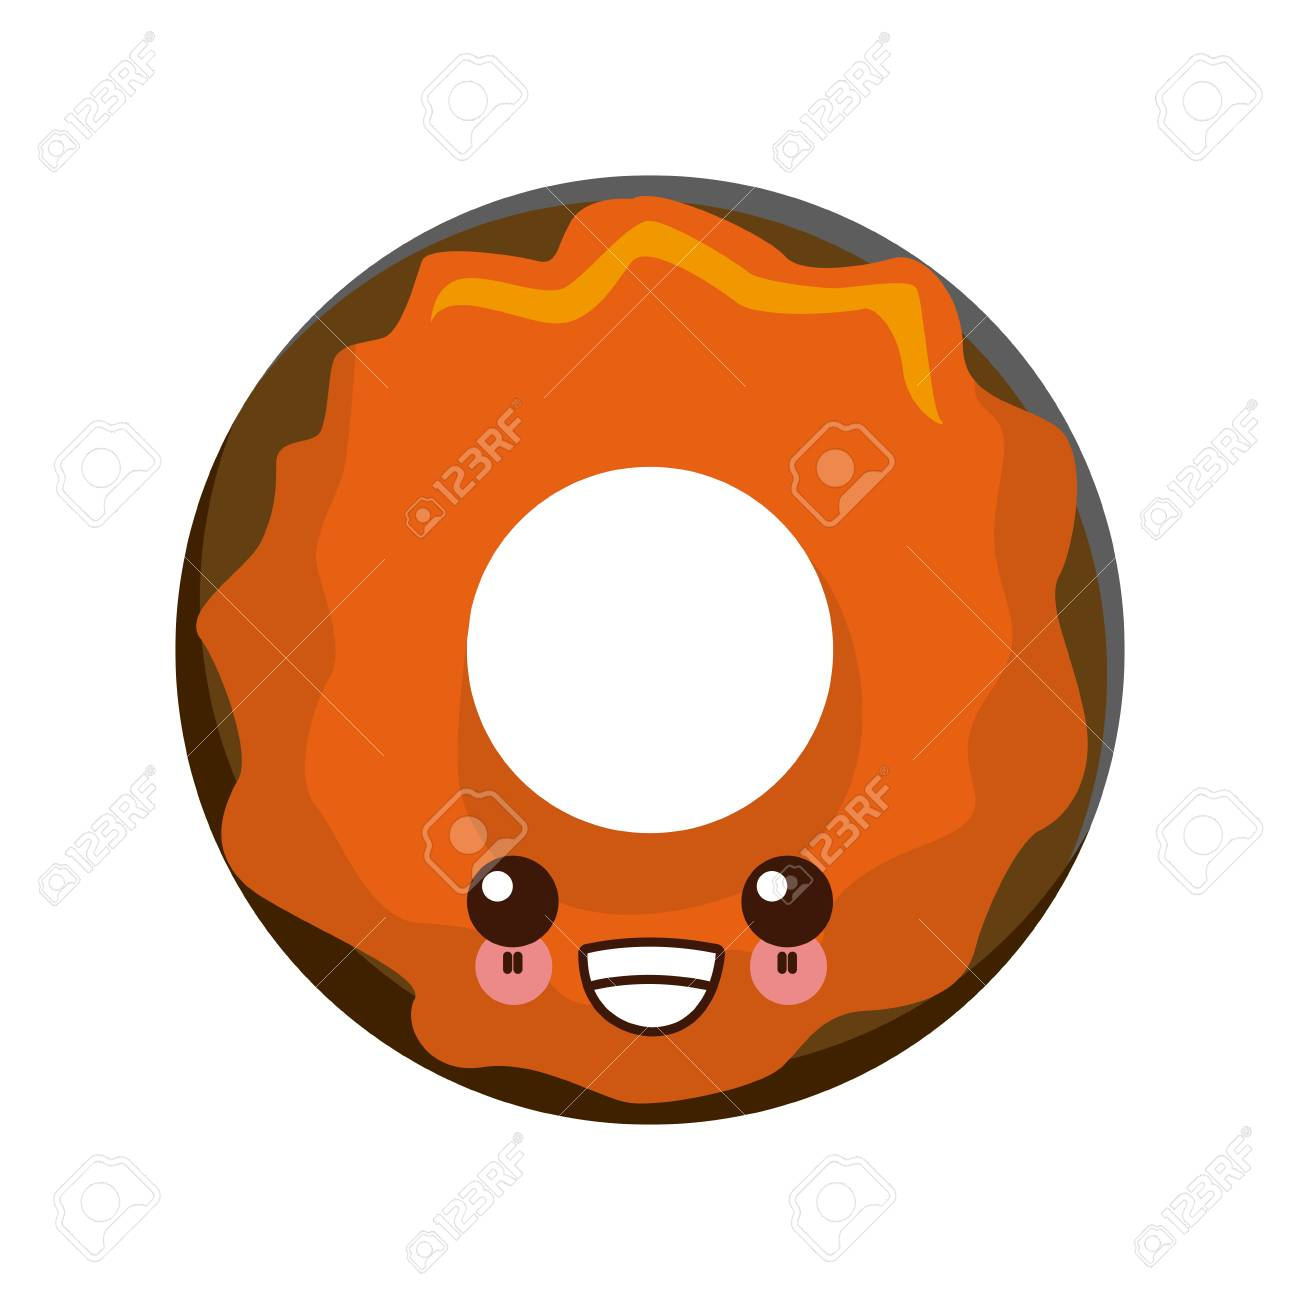 Delicious Donut Dessert Cute Cartoon Vector Illustration